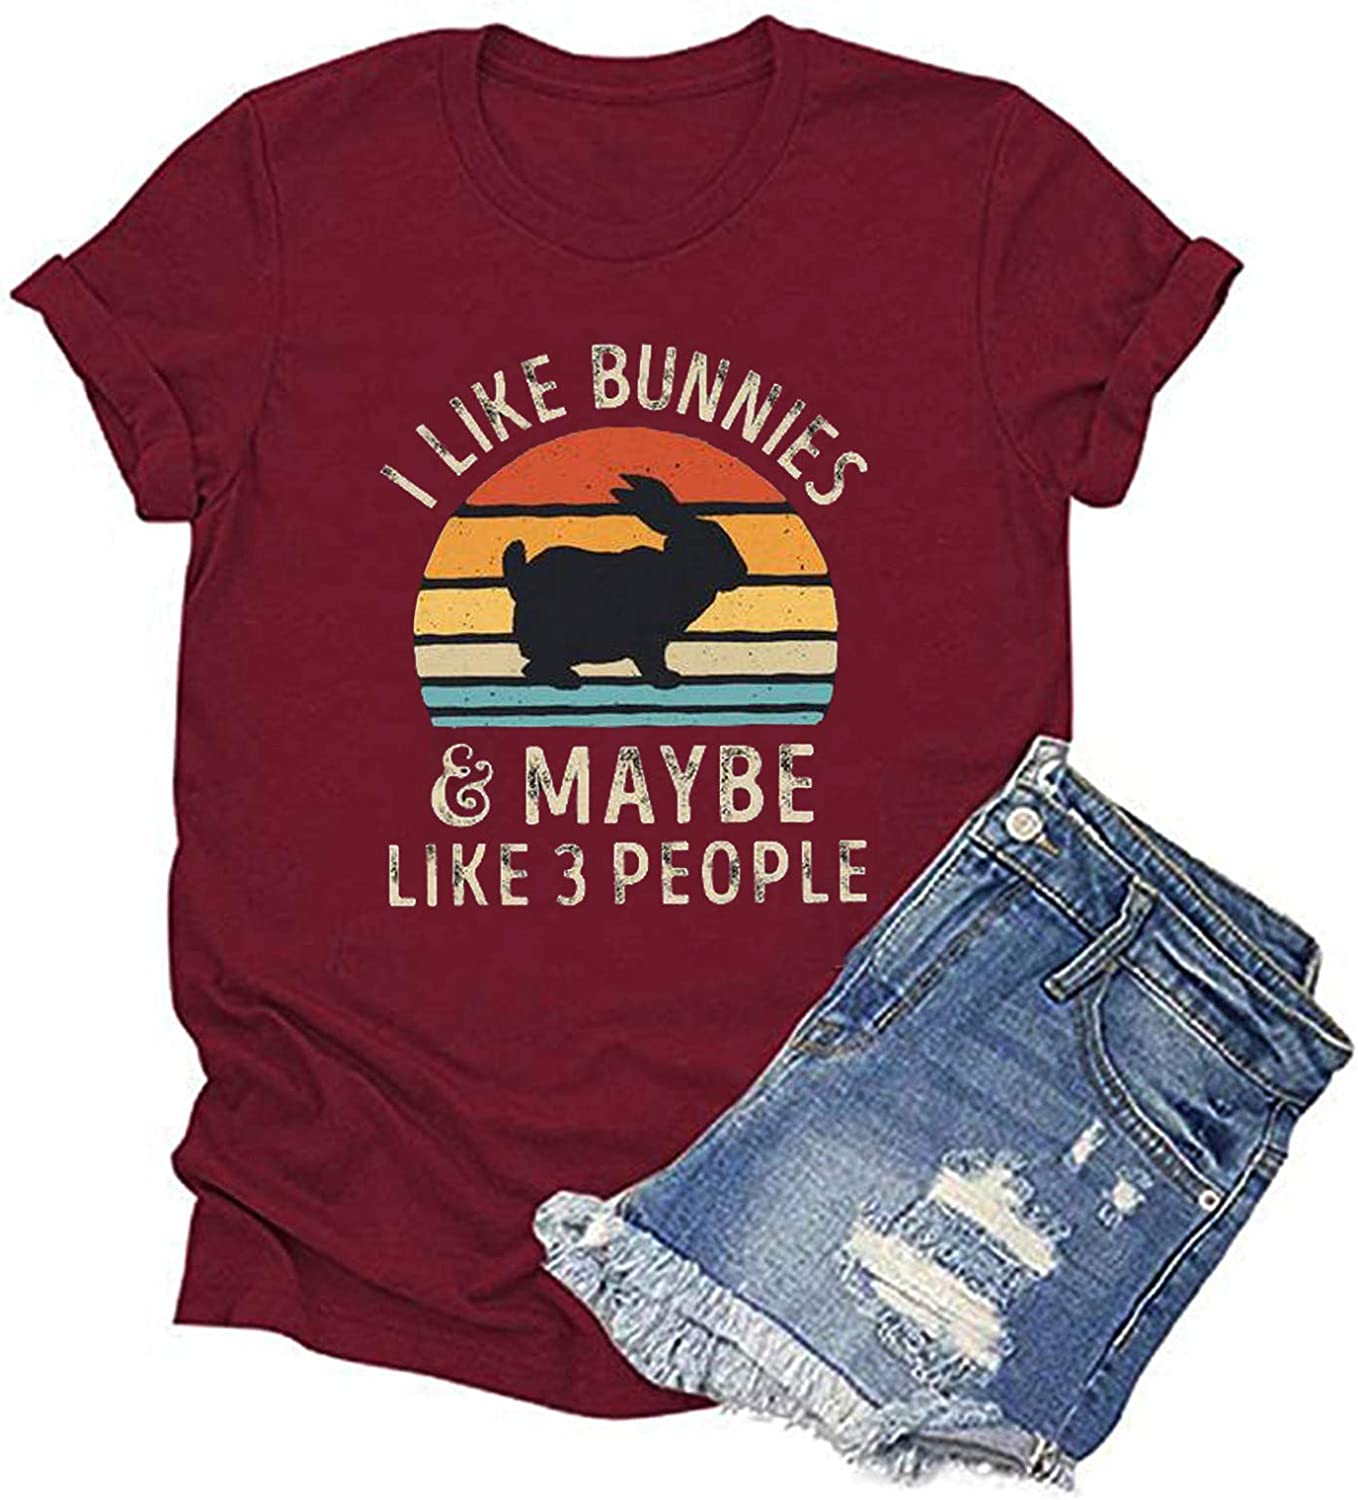 Tshirts for Womens,Women Summer Casual Easter Print T-Shirt Short Sleeve Graphic Tees Blouse Tops